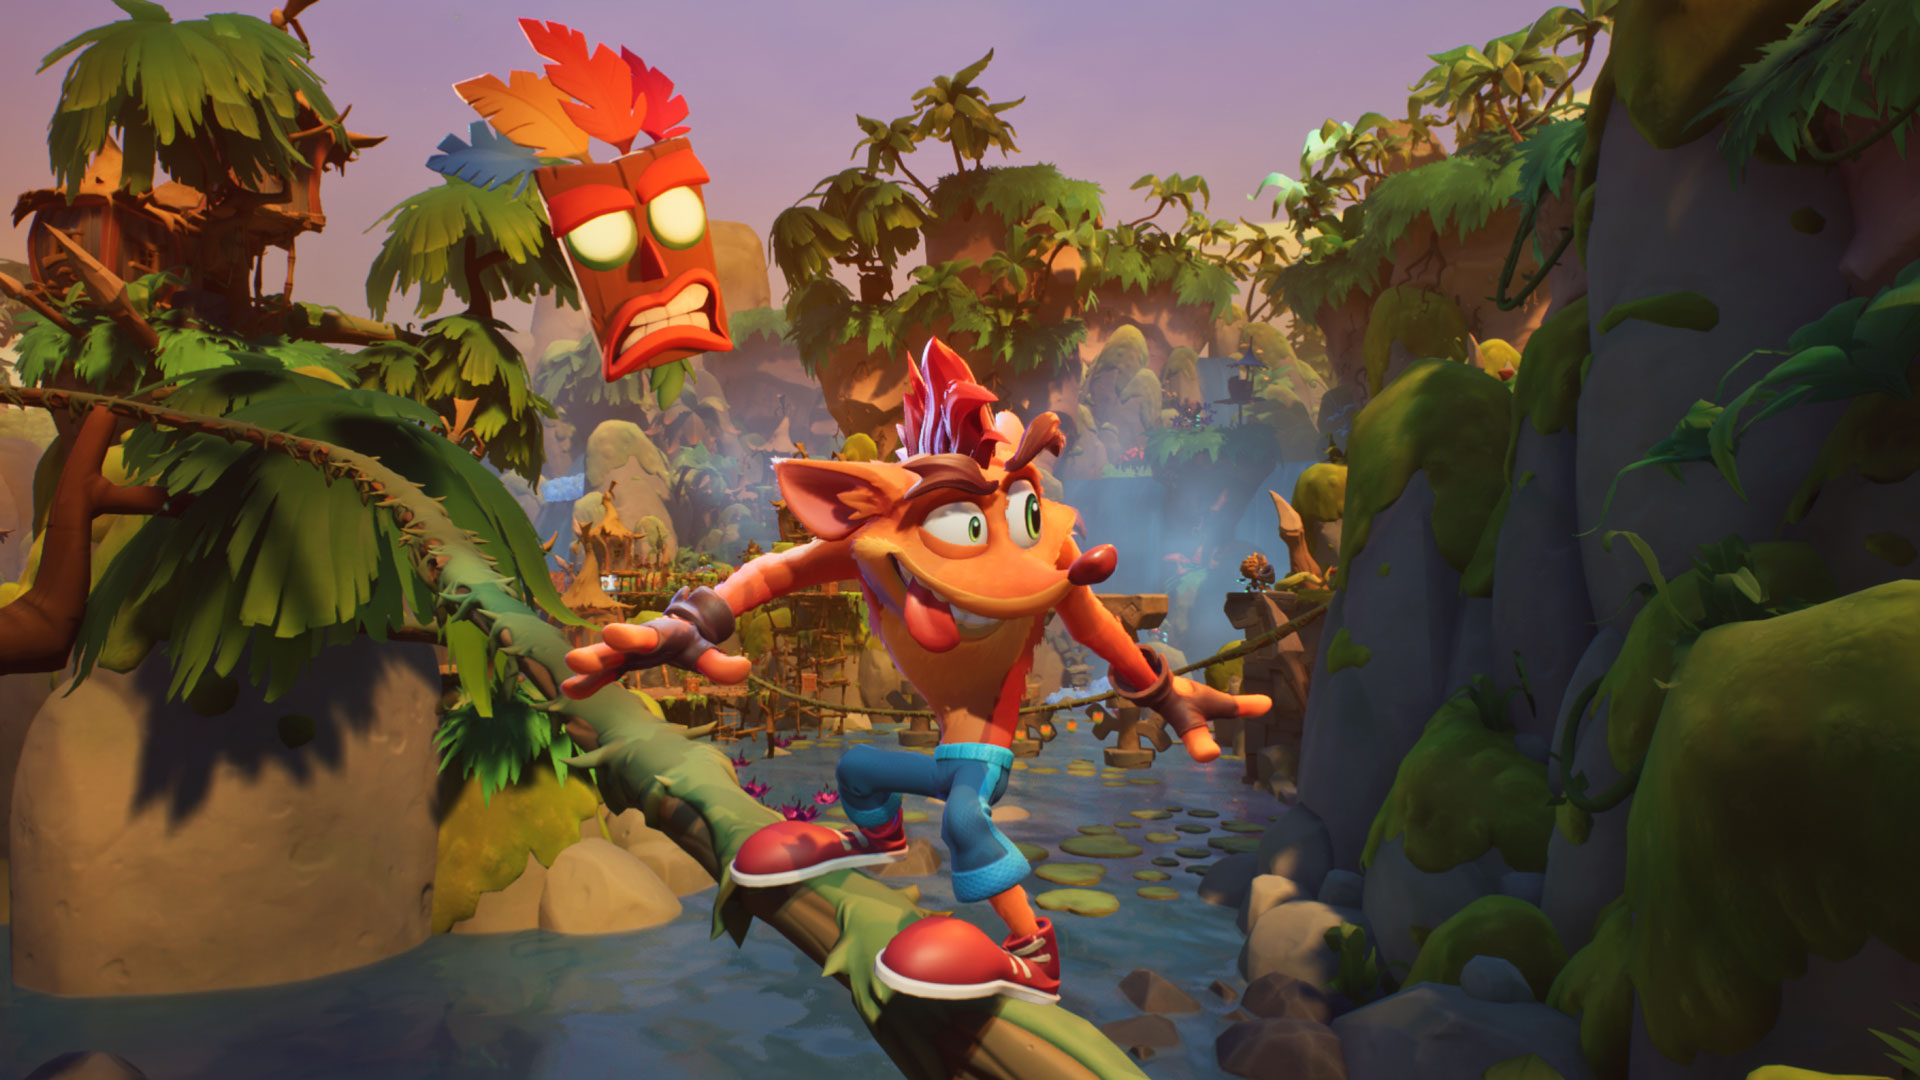 Just N.Time for Fall – Crash Bandicoot™ 4: It's About Time - Image 4